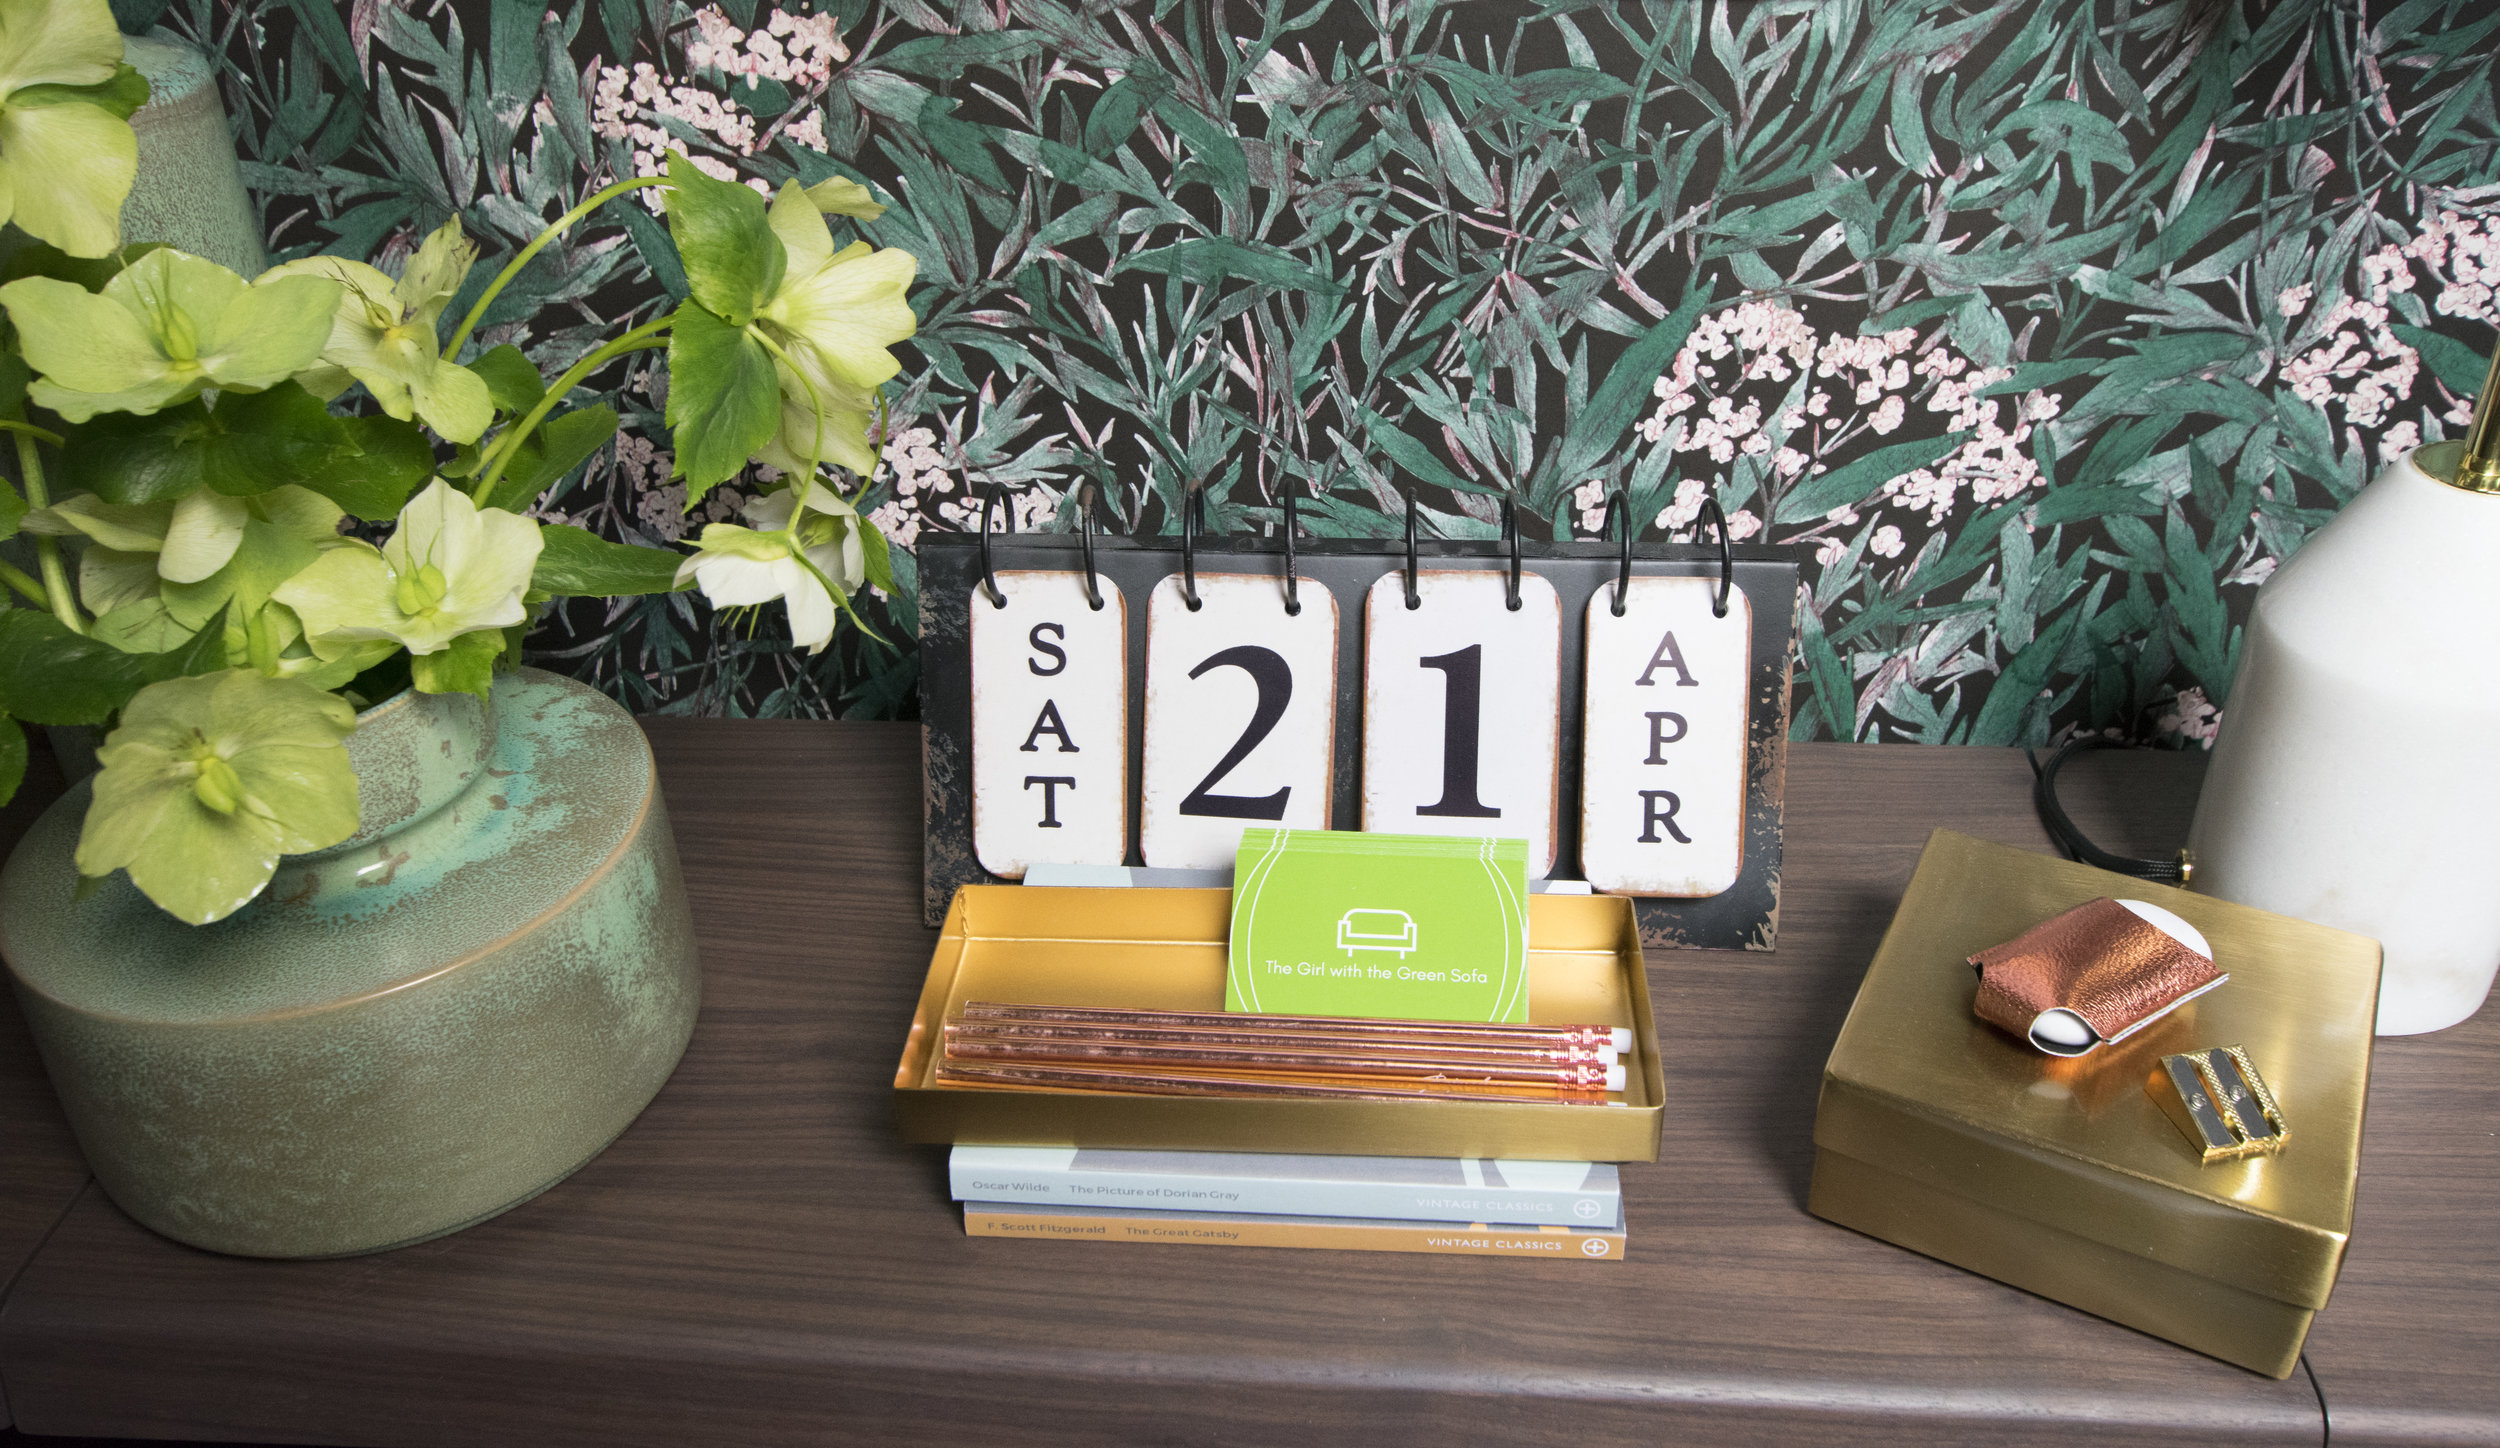 Normos Desk Set in Gold, Magni Small Vase, MADE. Stationary from Paperchase. Desk Calendar my own.